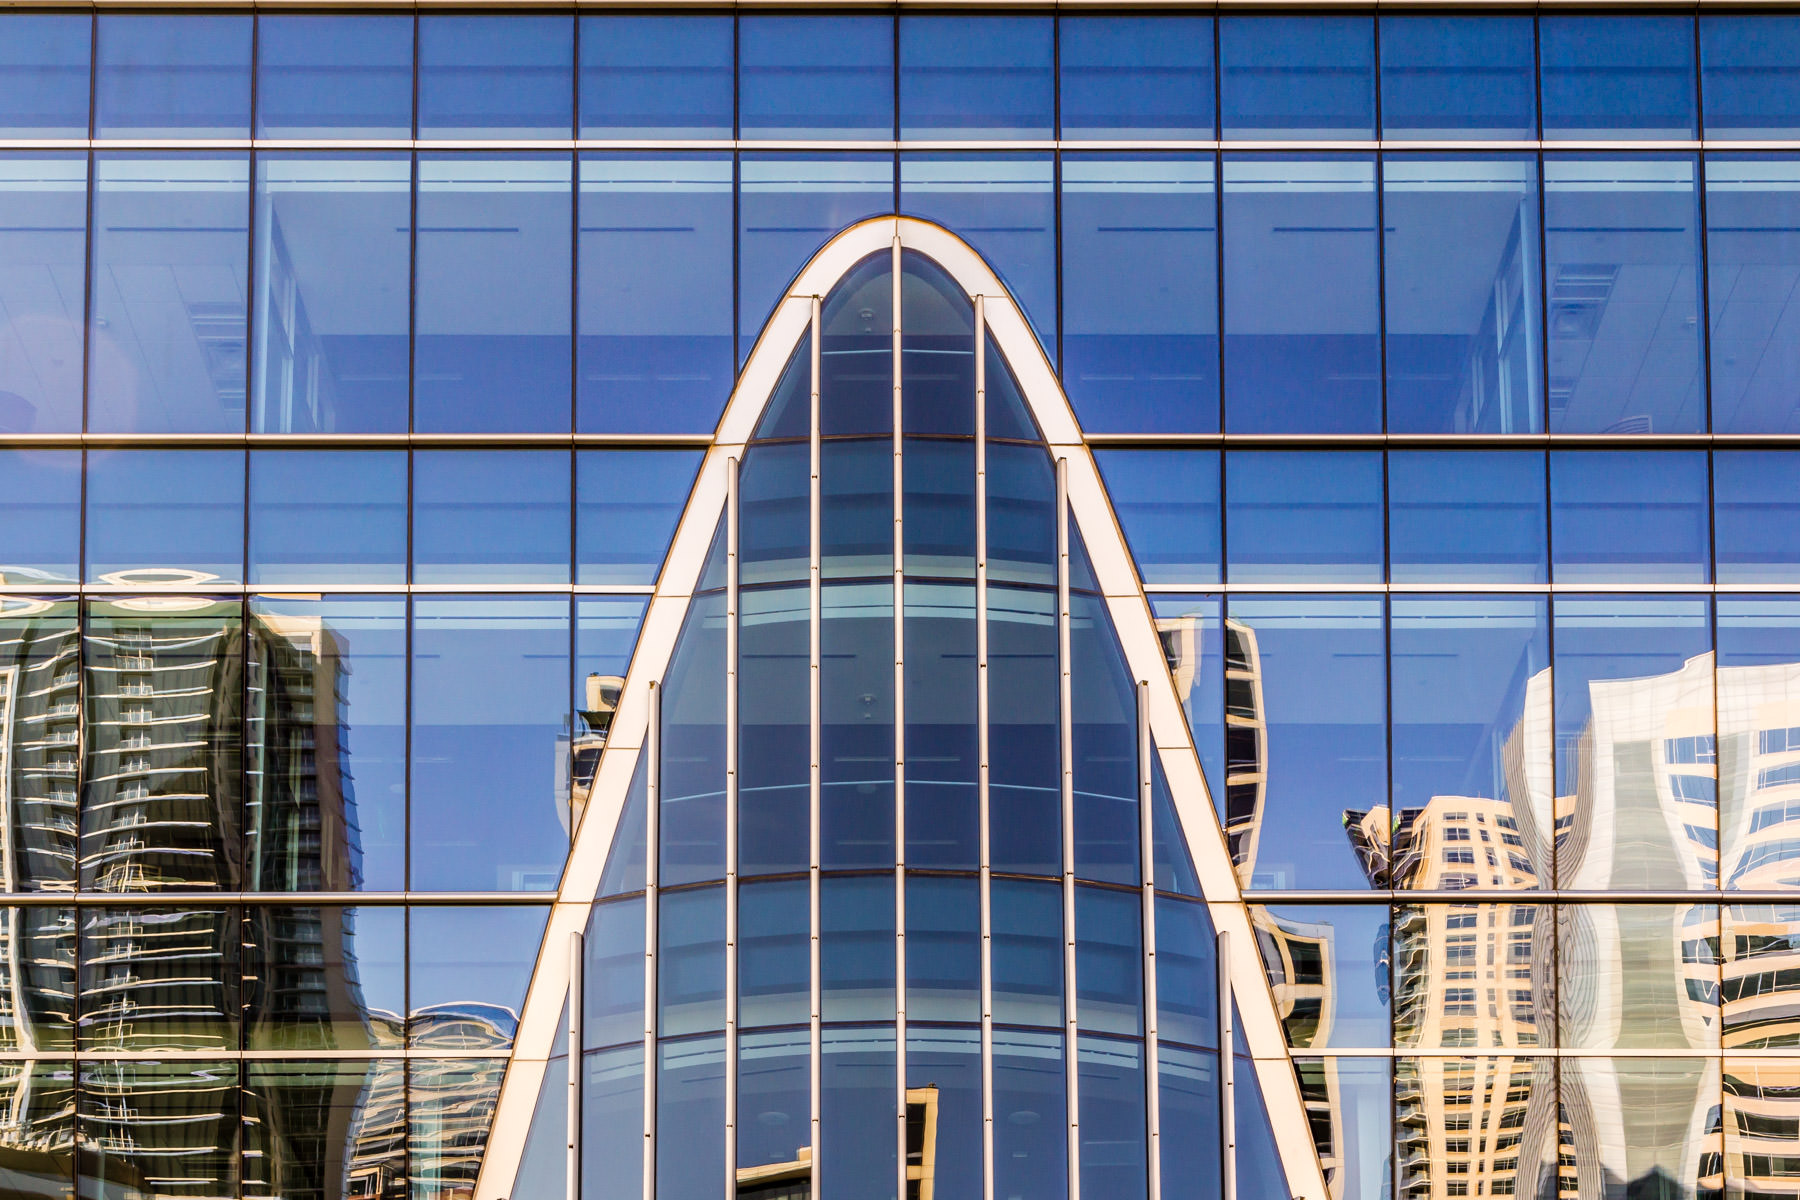 Uptown Dallas highrise buildings are reflected in this exterior detail of Downtown Dallas' Hunt Oil headquarters building.